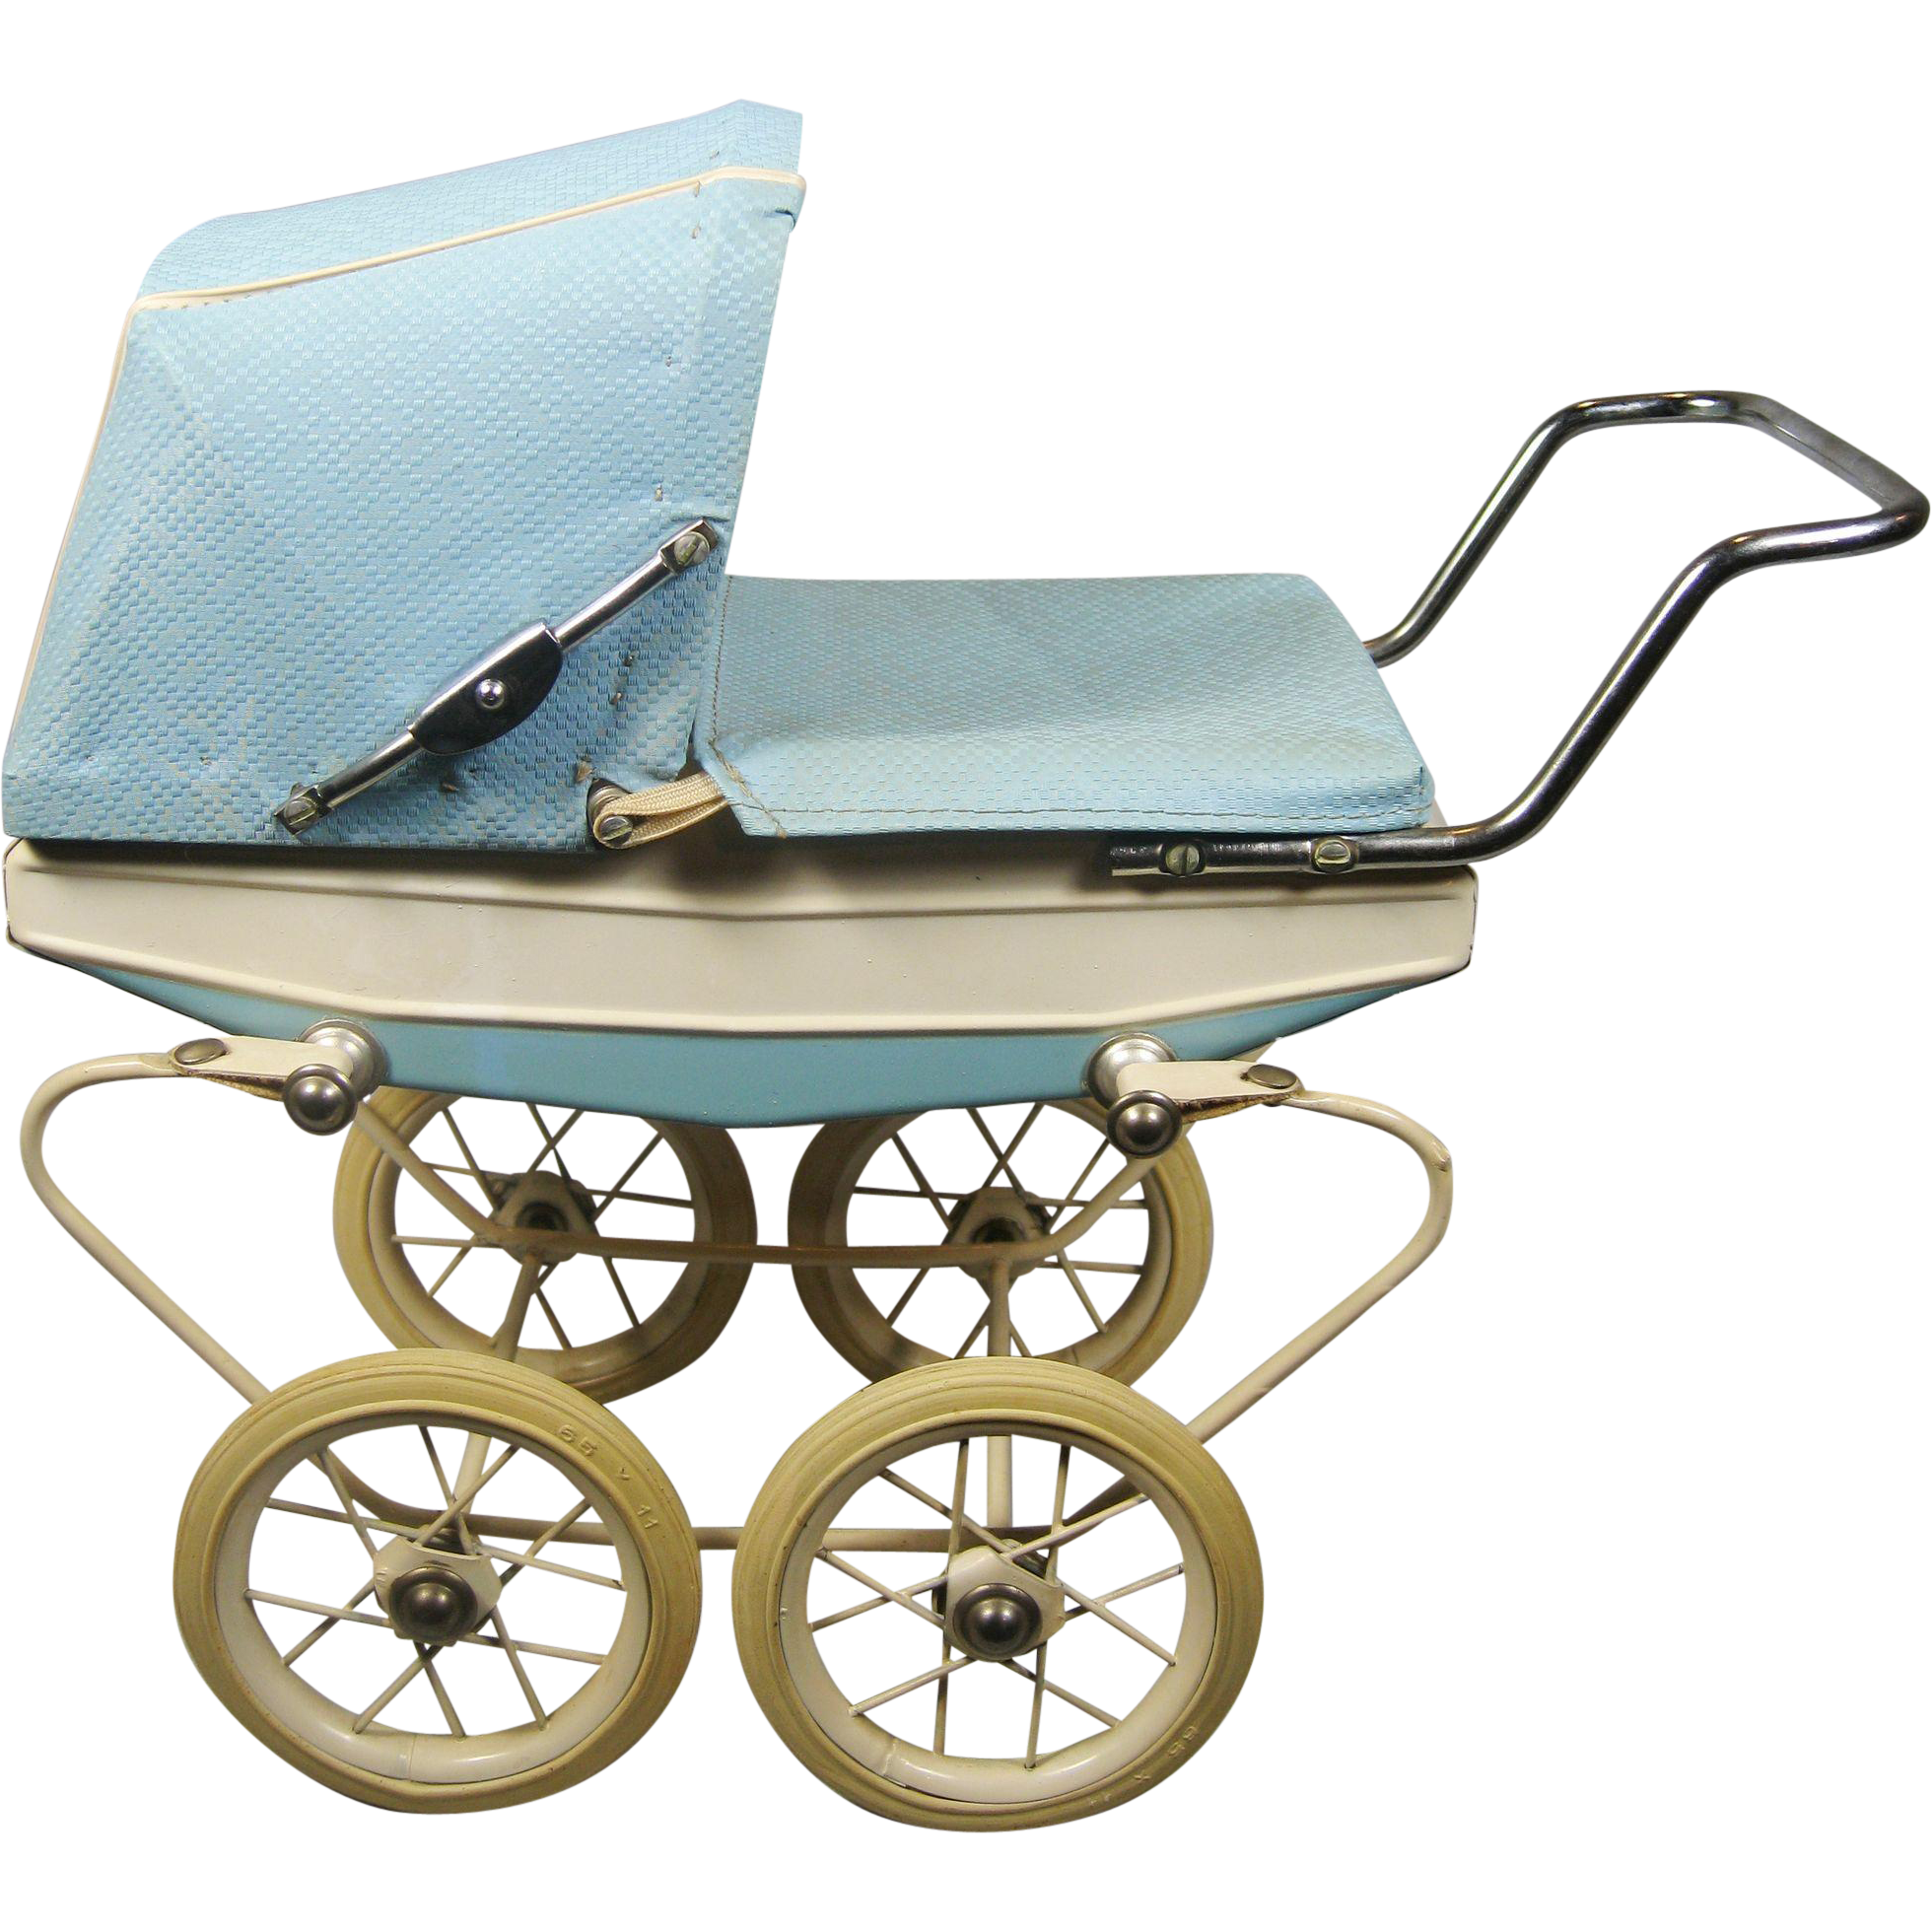 Best Stroller And Car Seat Combo To Buy